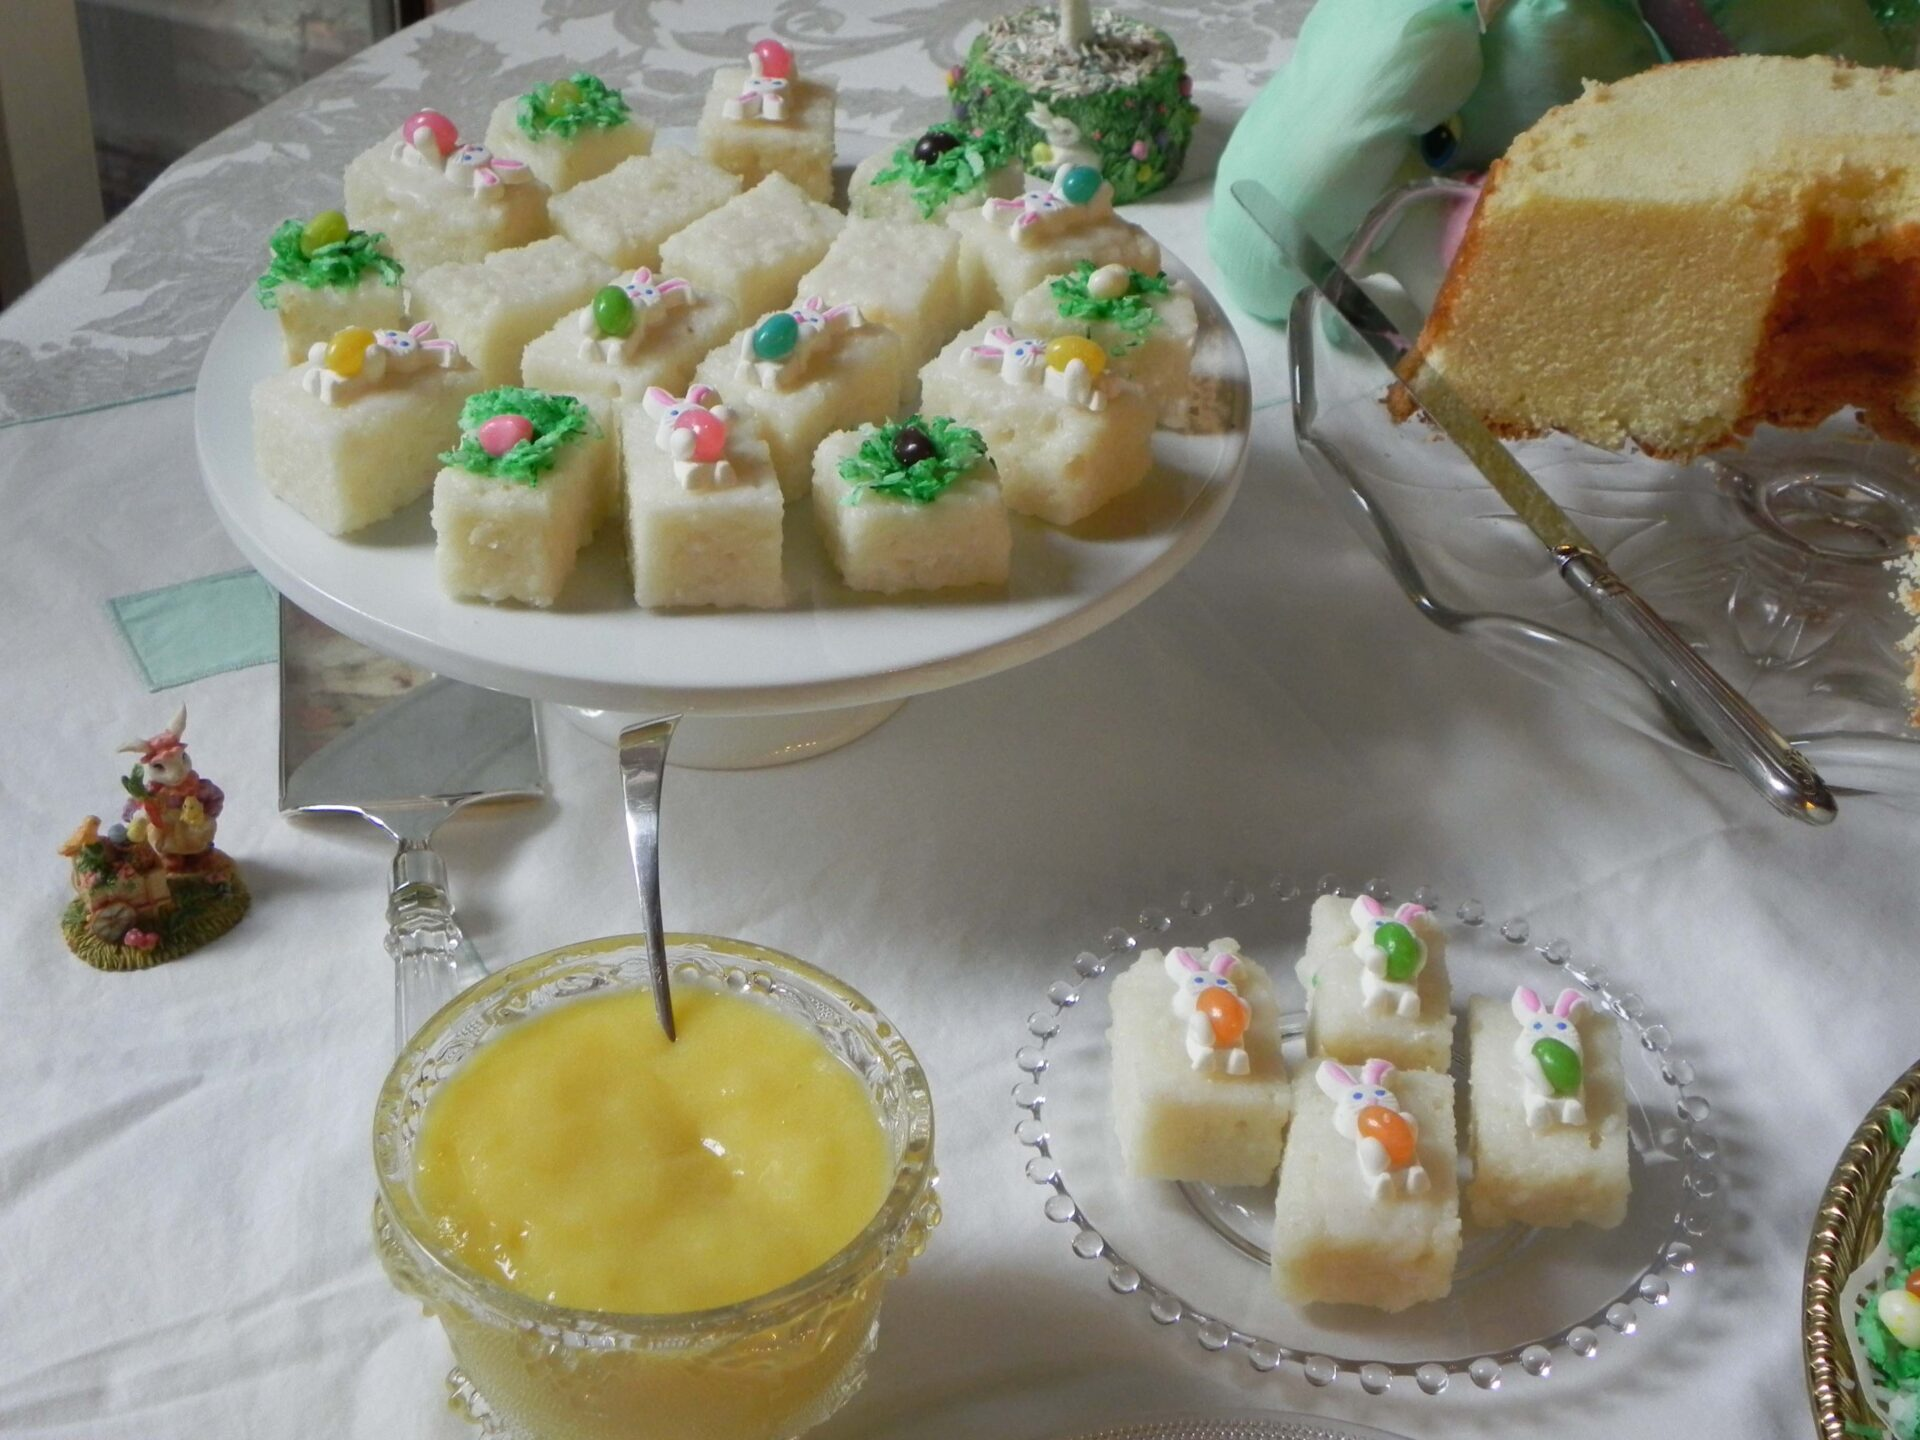 Cake Recipe Jelly Beans: On Cooking Southern: Jelly Beans, Cake, And Petit Fours